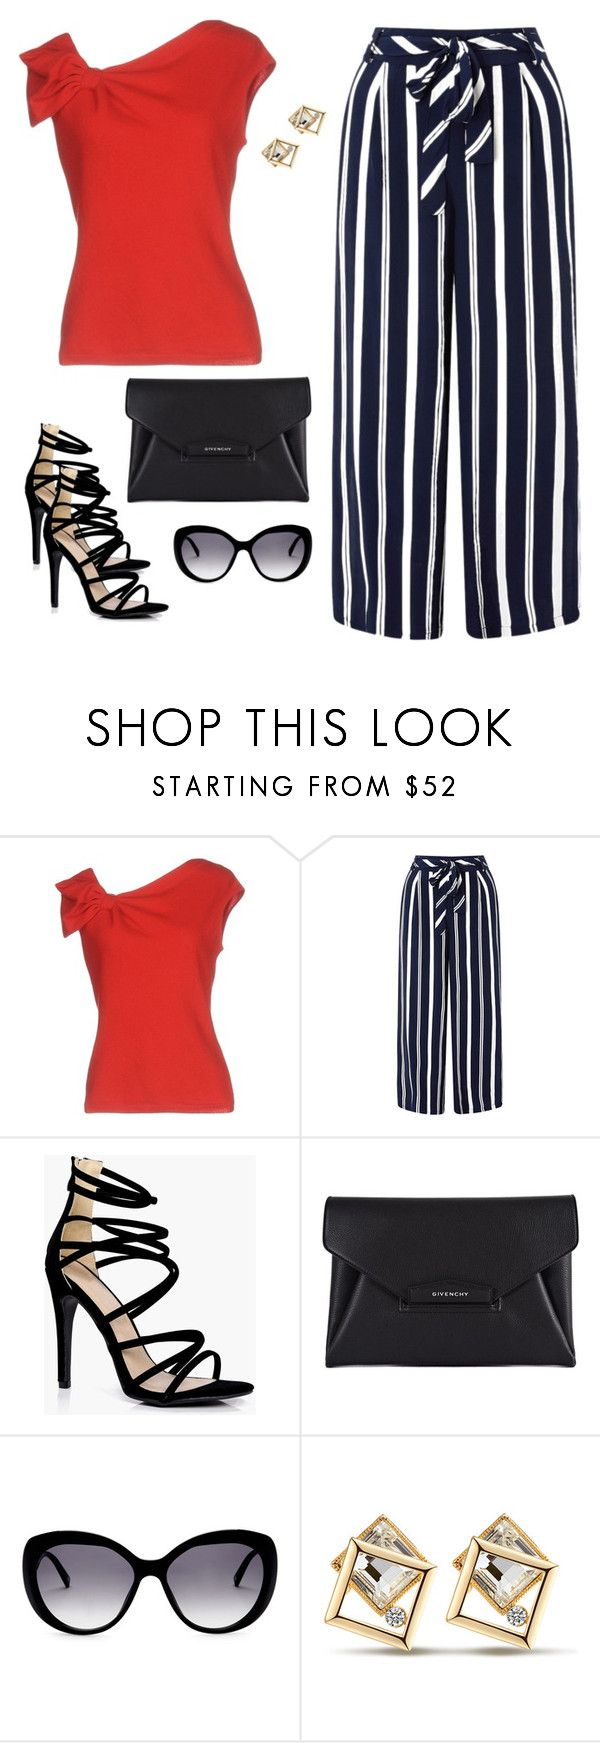 """""""P. G.# 51"""" by patricia-gonzalez-1 ❤ liked on Polyvore featuring Valentino, Monsoon, Boohoo, Givenchy and ESCADA"""